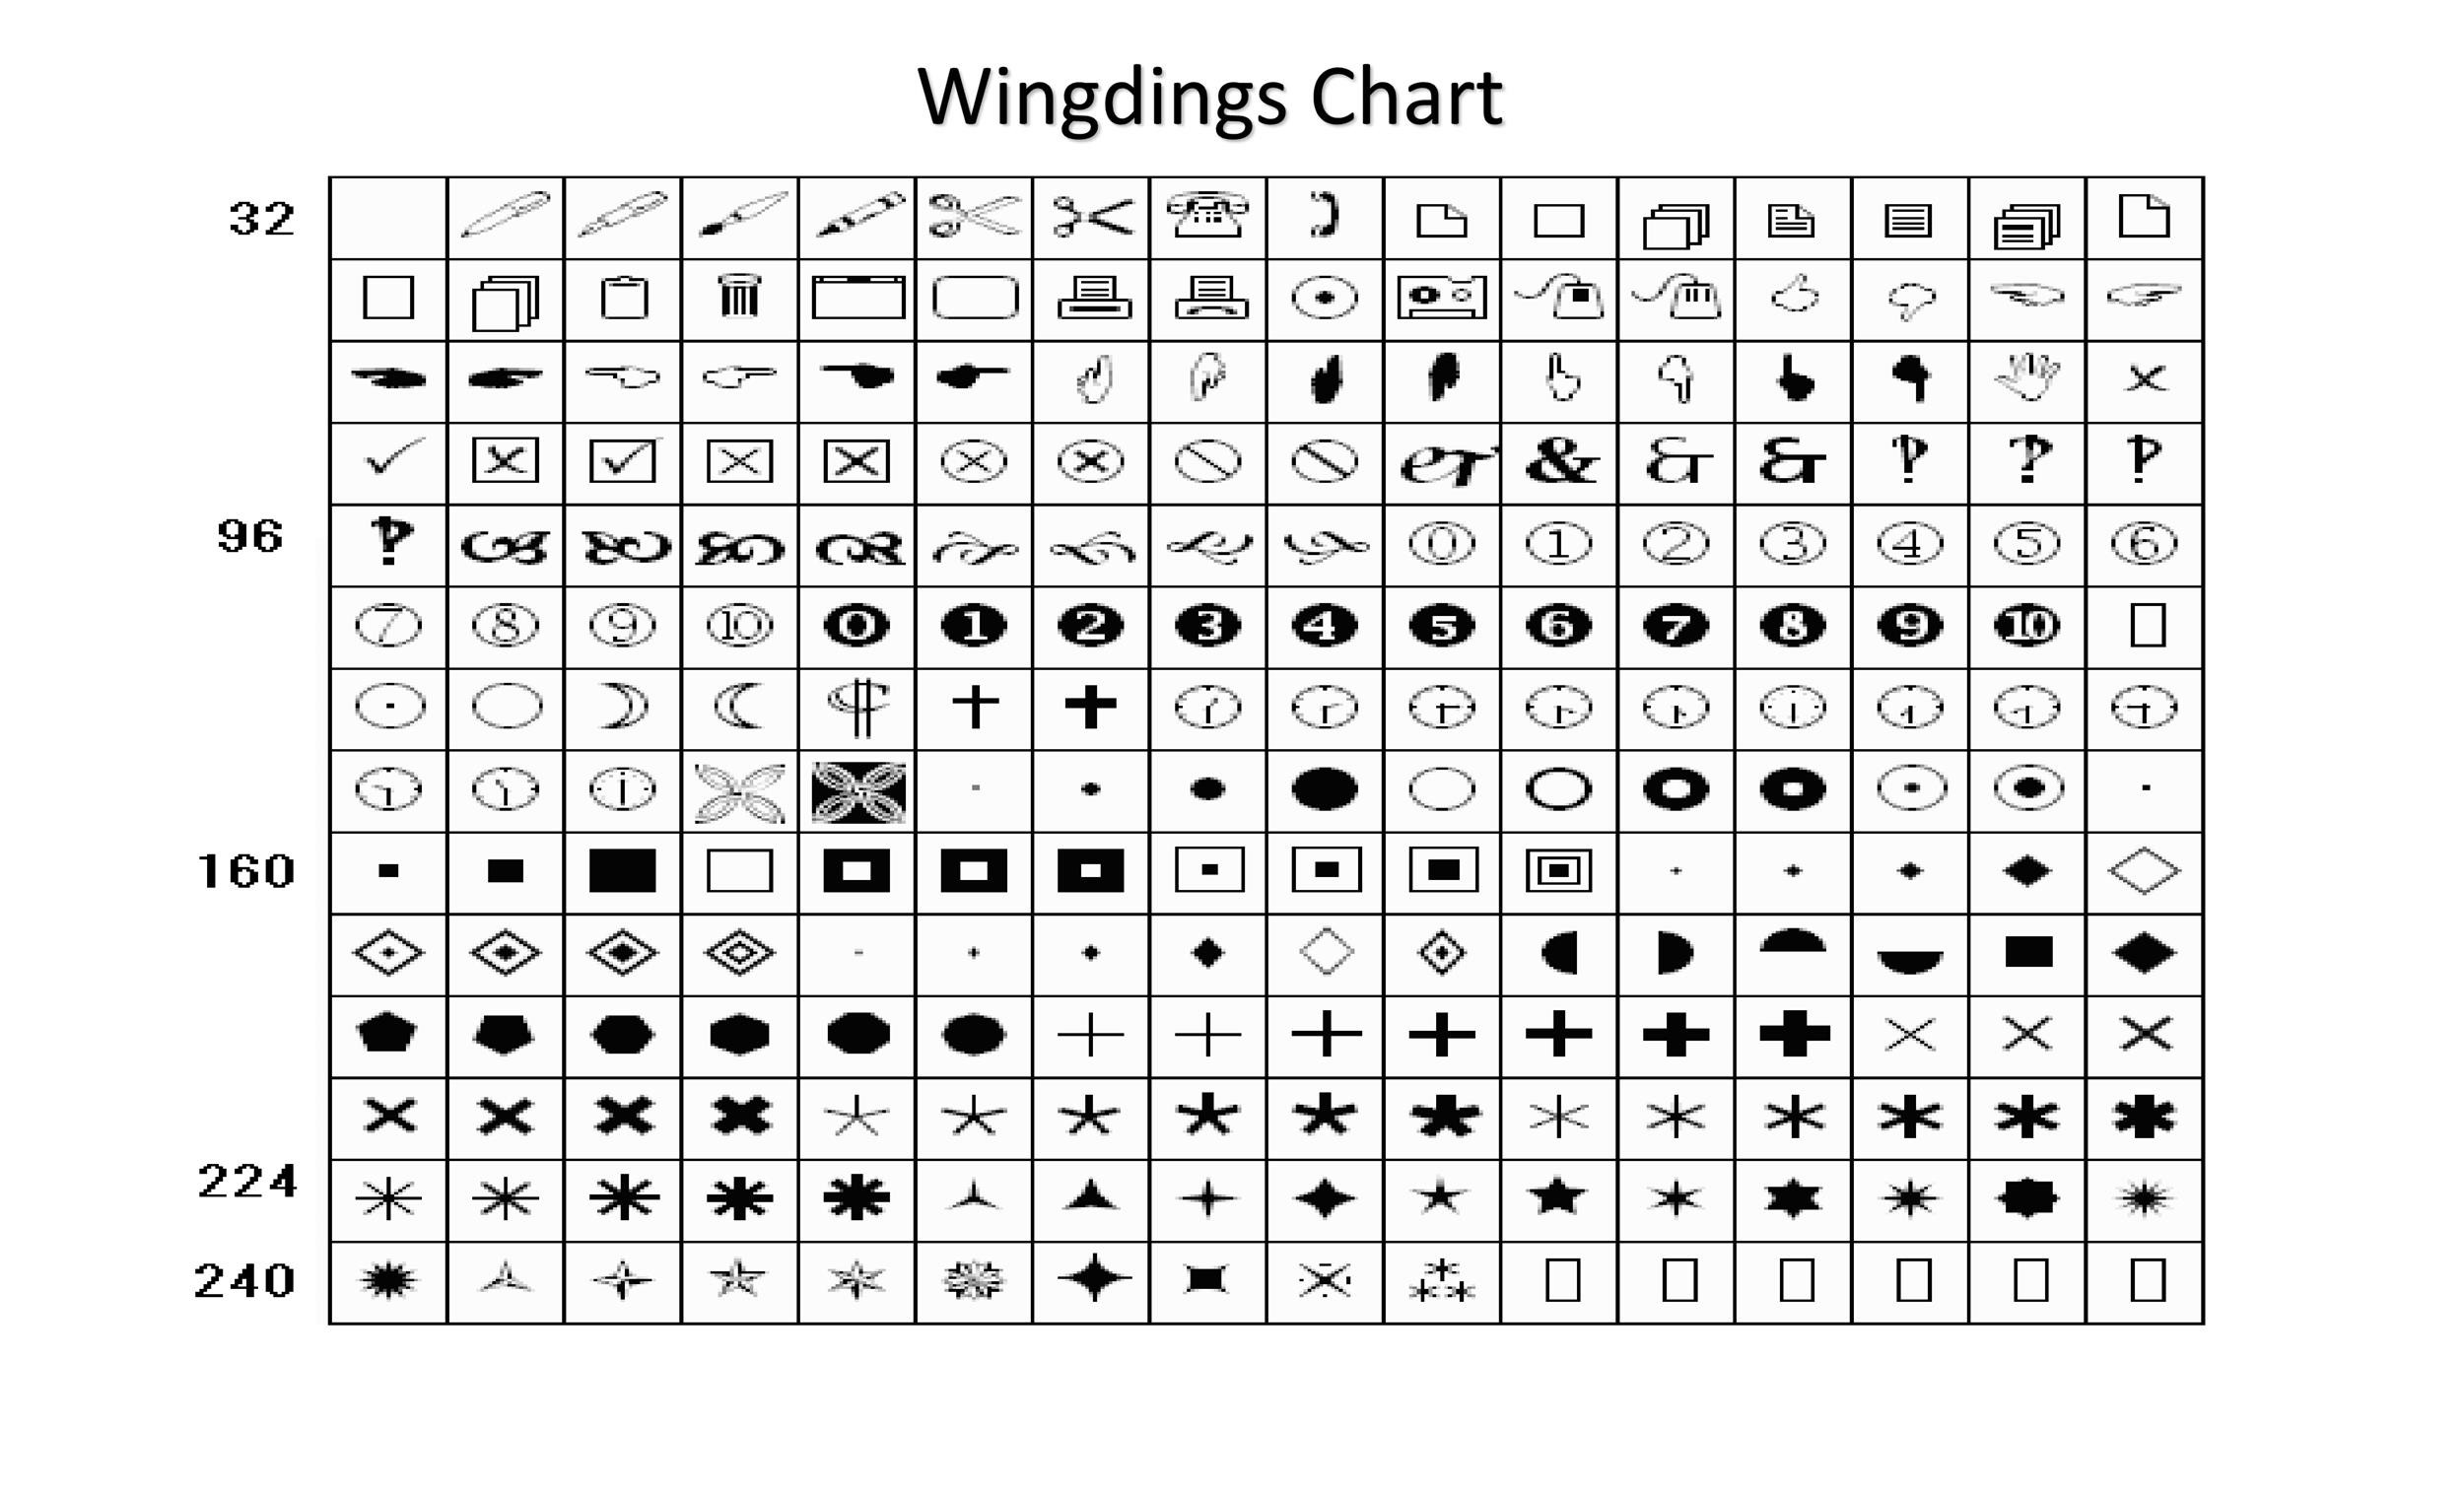 Free wingdings translator template 31